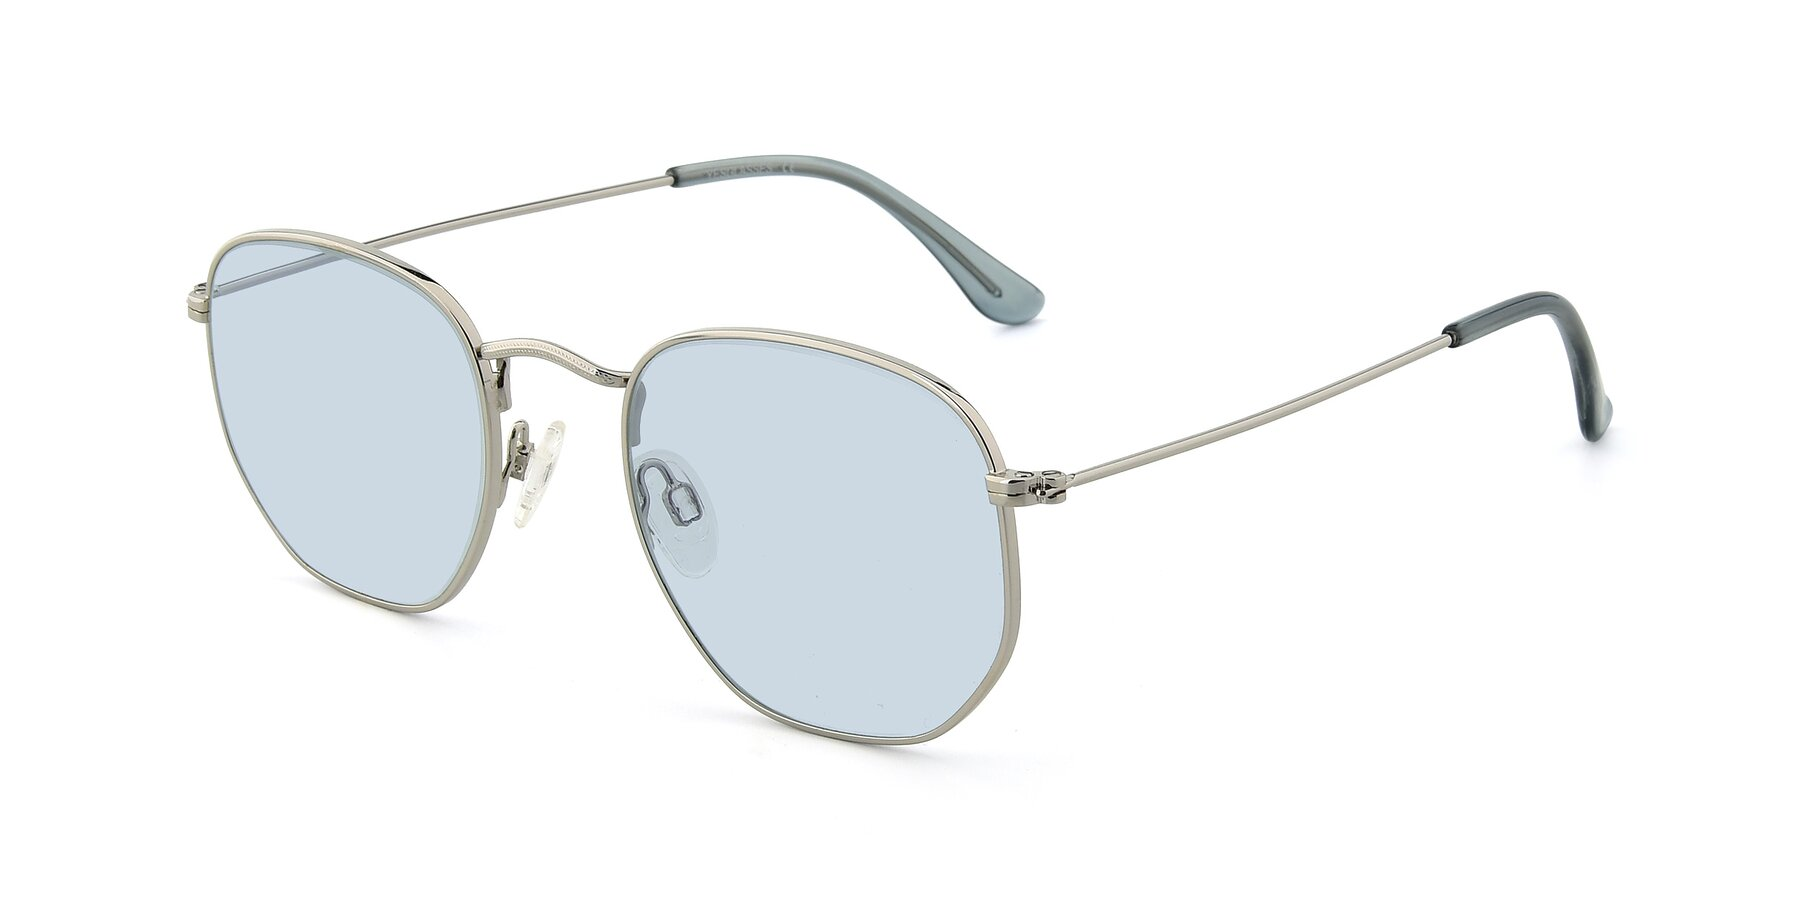 Angle of SSR1943 in Silver with Light Blue Tinted Lenses